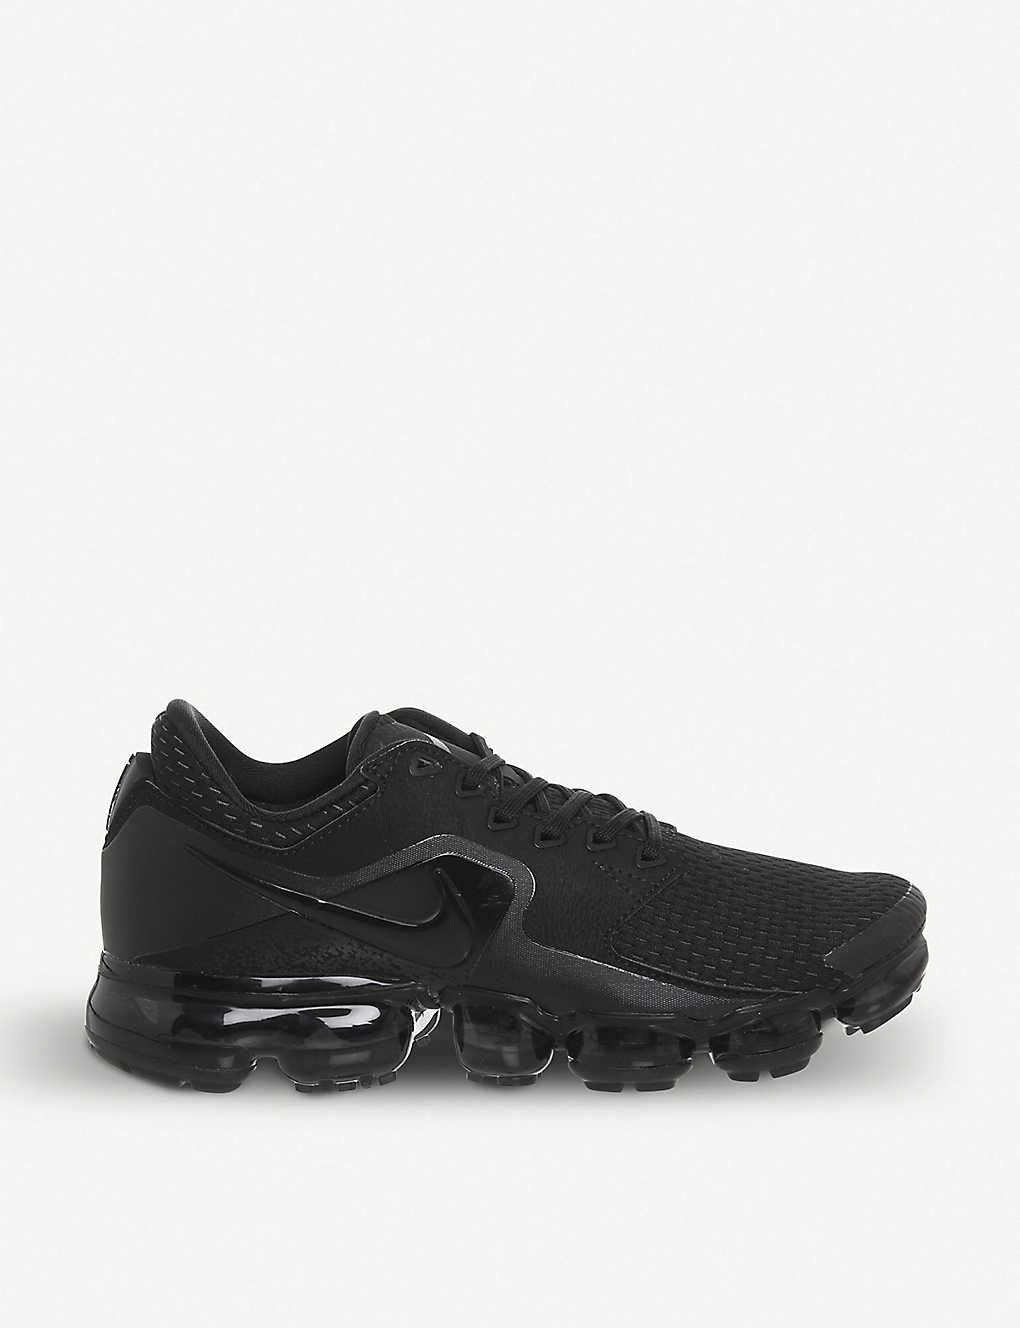 c95796bbd0001 NIKE - Air Vapormax Flyknit Utility trainers | Selfridges.com